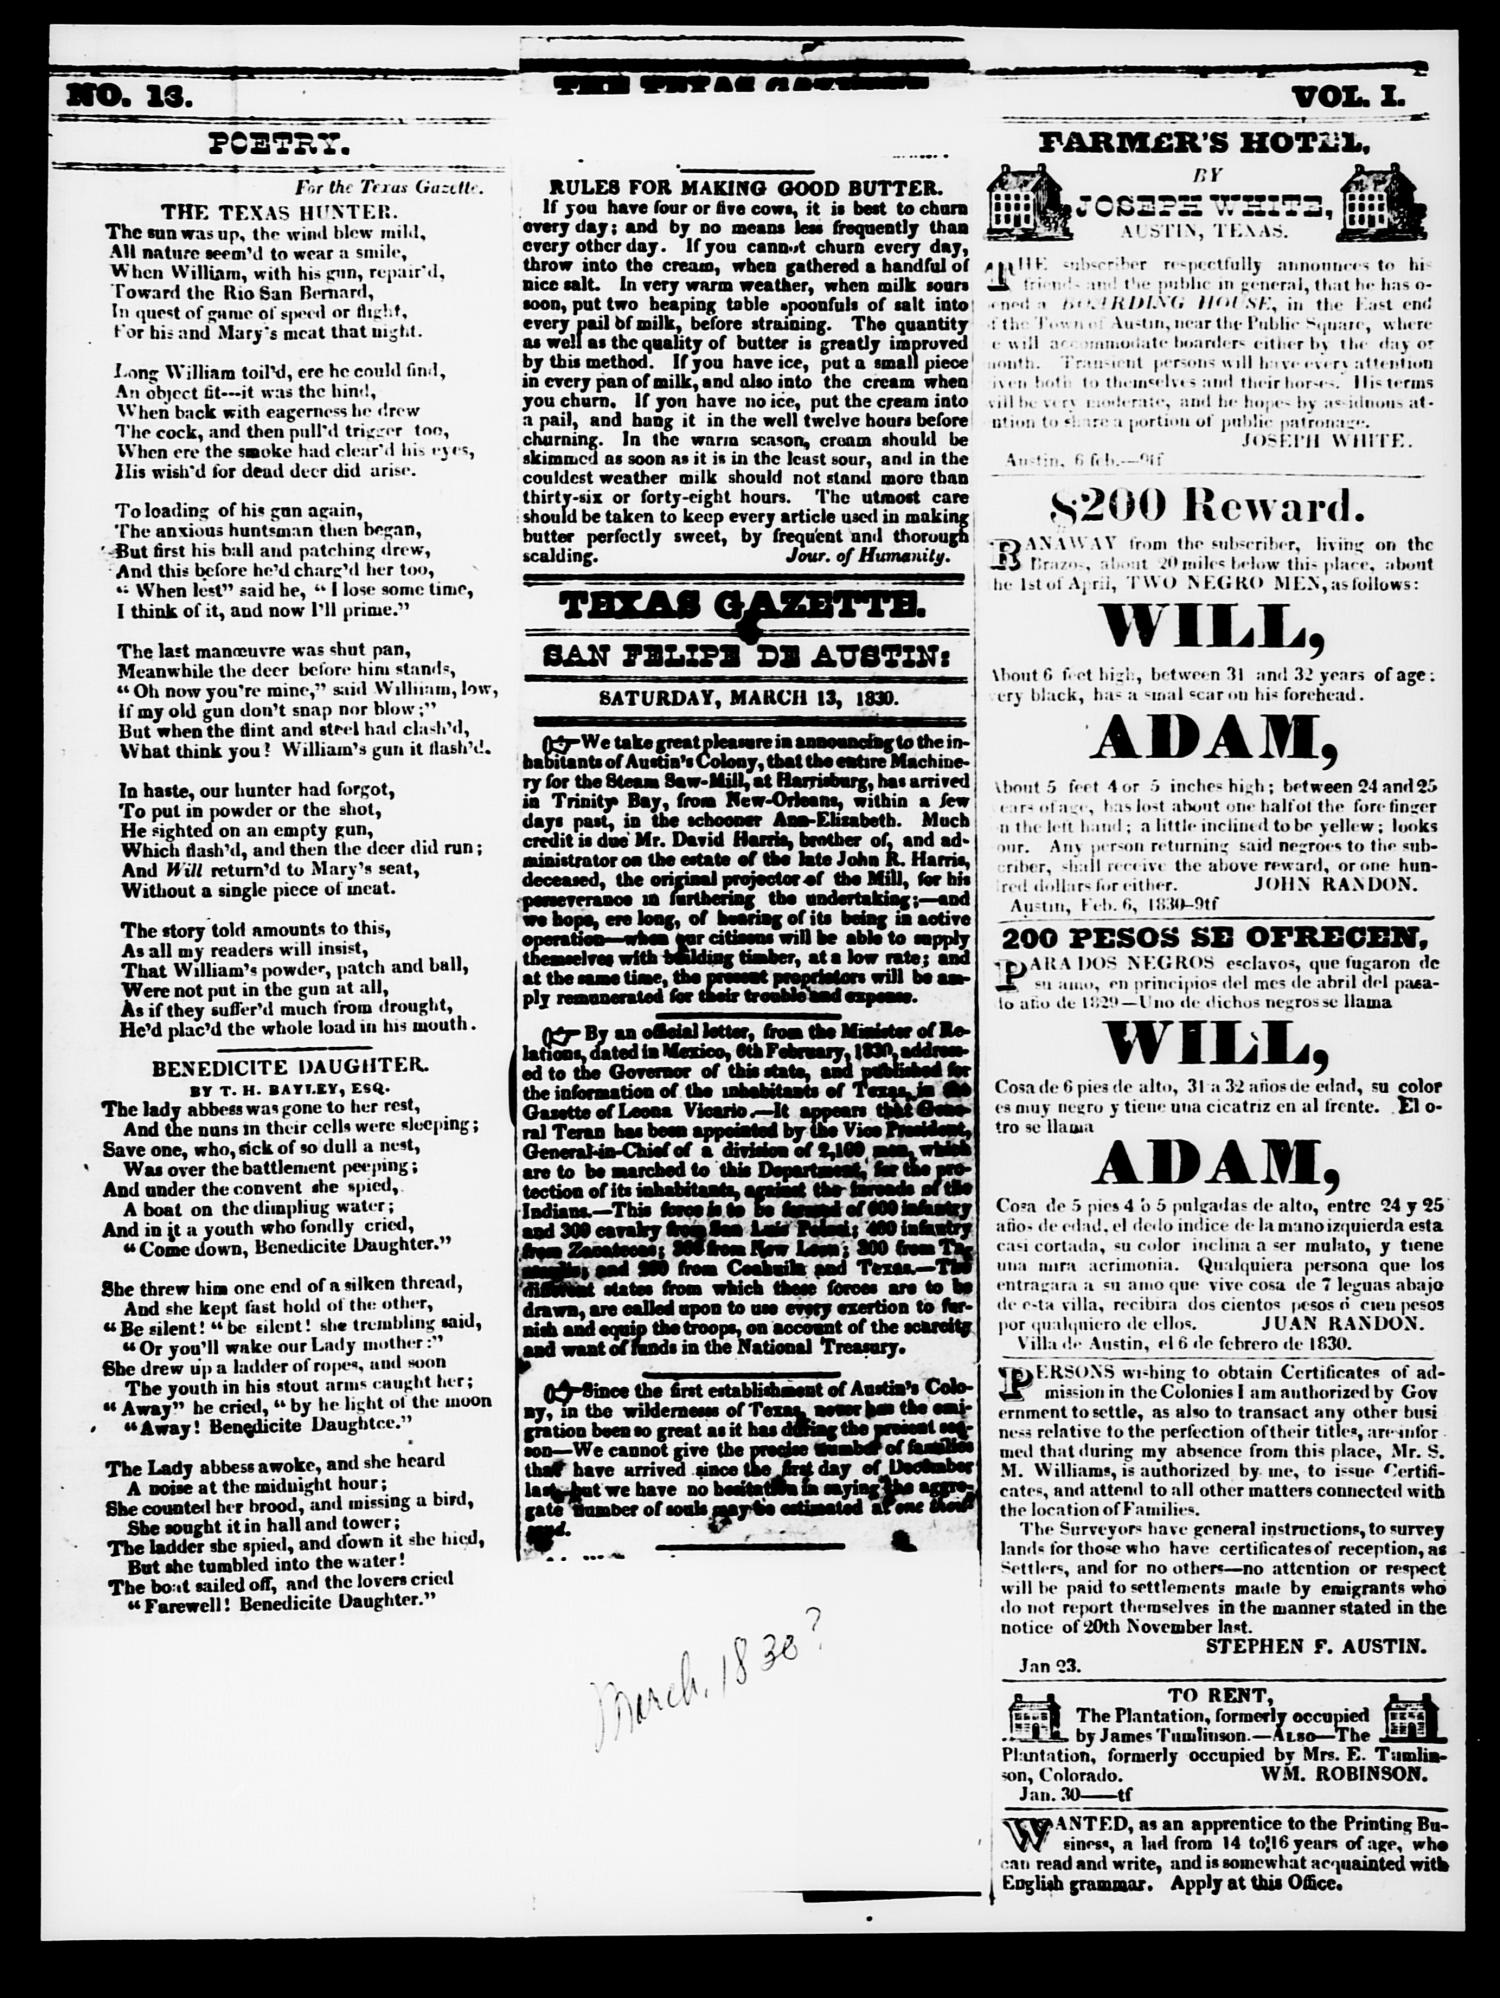 The Texas Gazette. (Austin, Tex.), Vol. 1, No. 13, Ed. 1, Saturday, March 13, 1830                                                                                                      [Sequence #]: 1 of 3